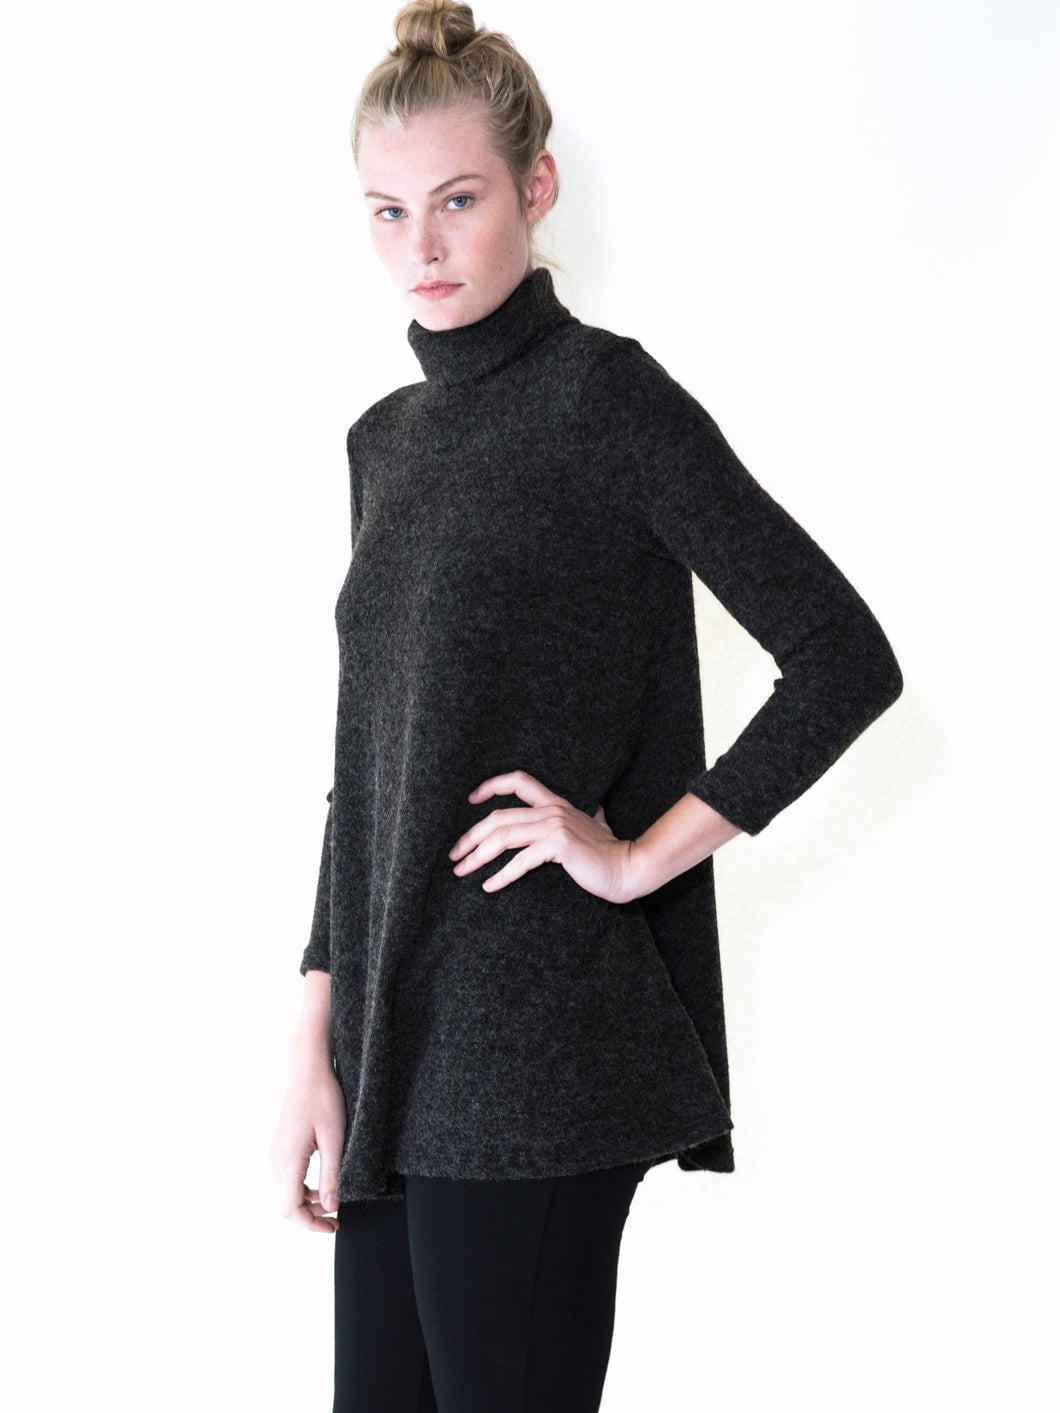 Maternity turtleneck sweater dress tunic by Audrey and Olive clothing